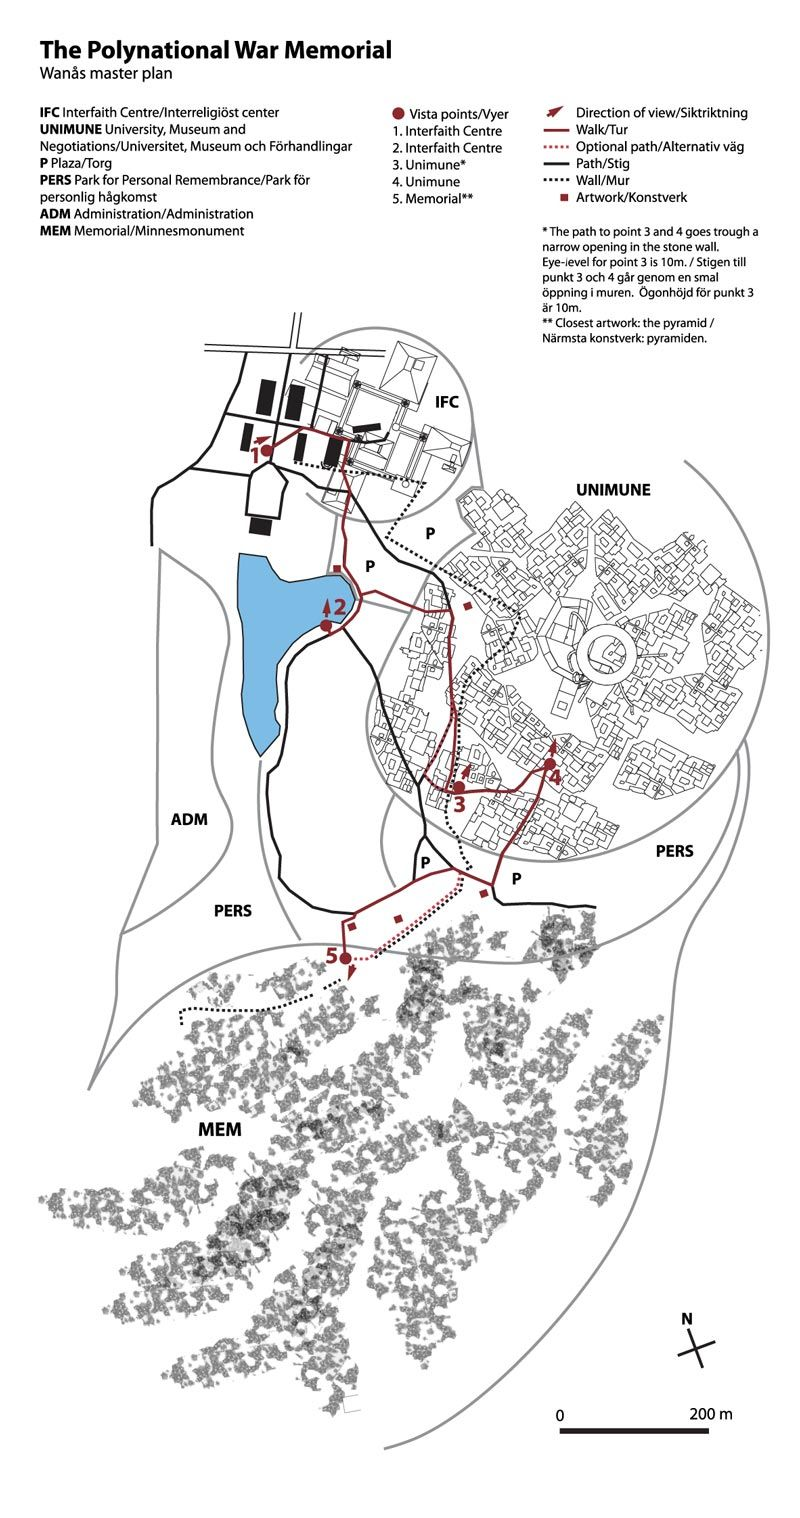 Wanås Master Plan: documentation video